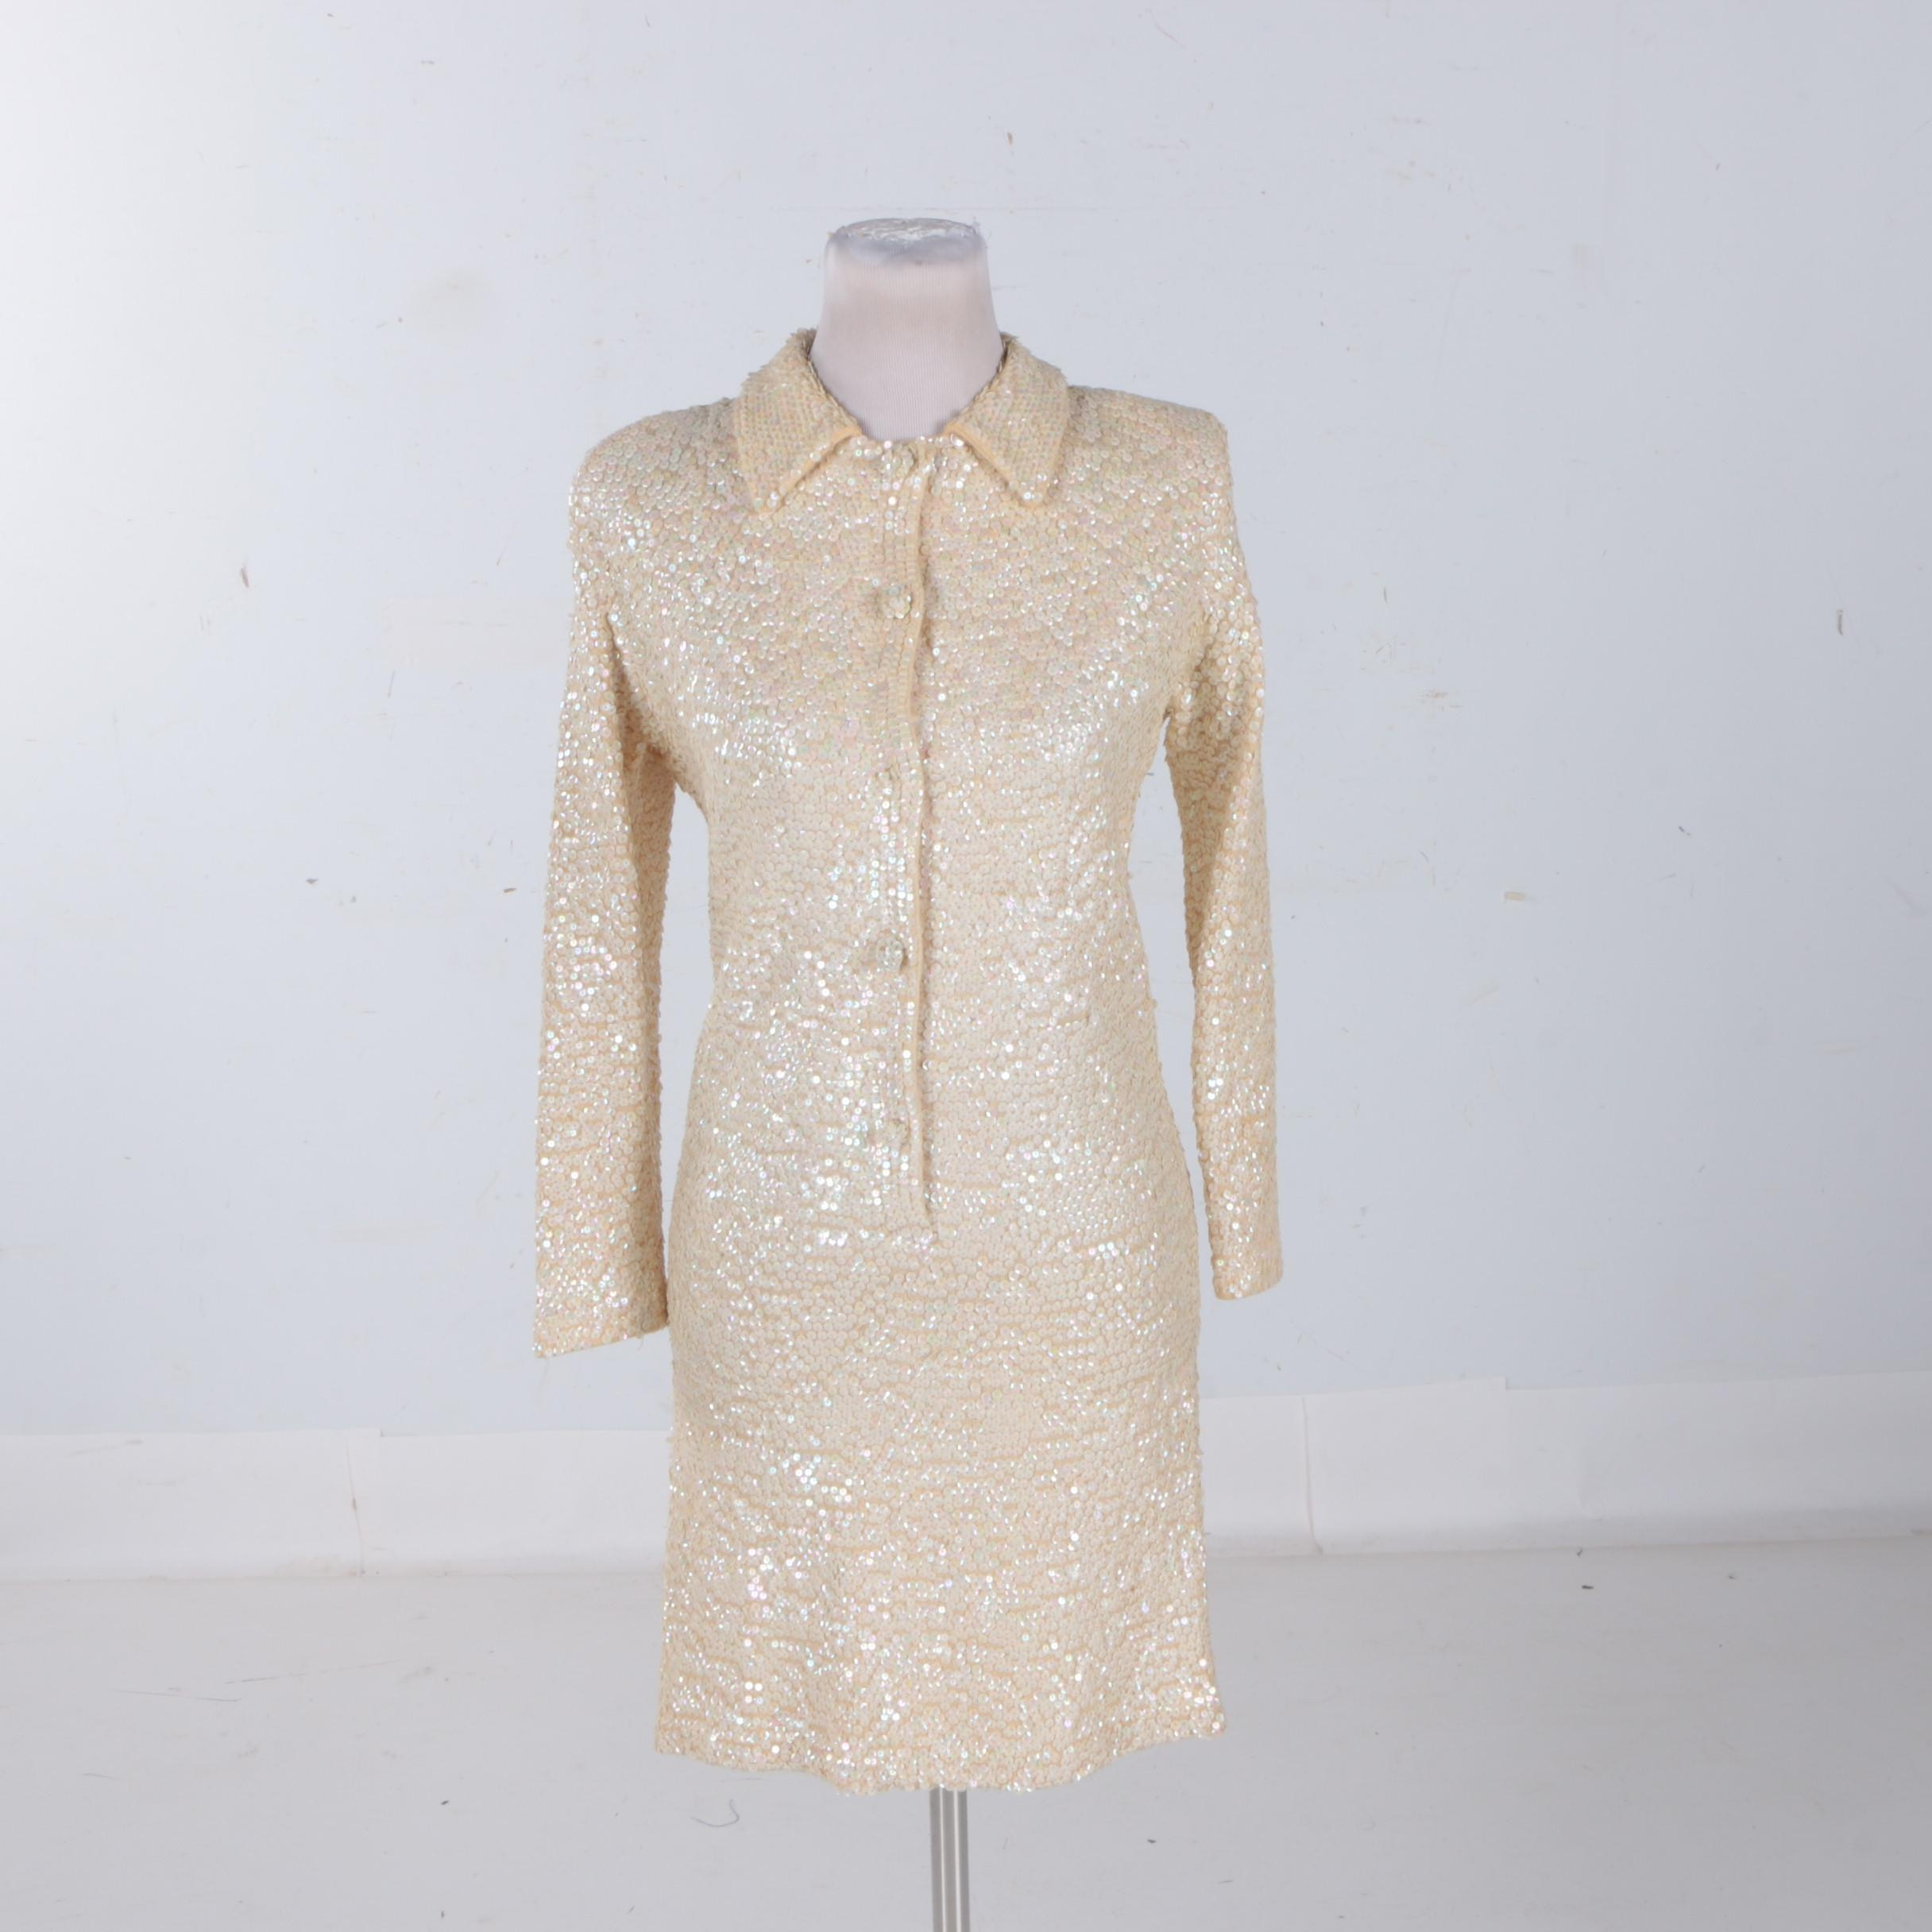 Circa 1970s Vintage Imperial Sequin Dress